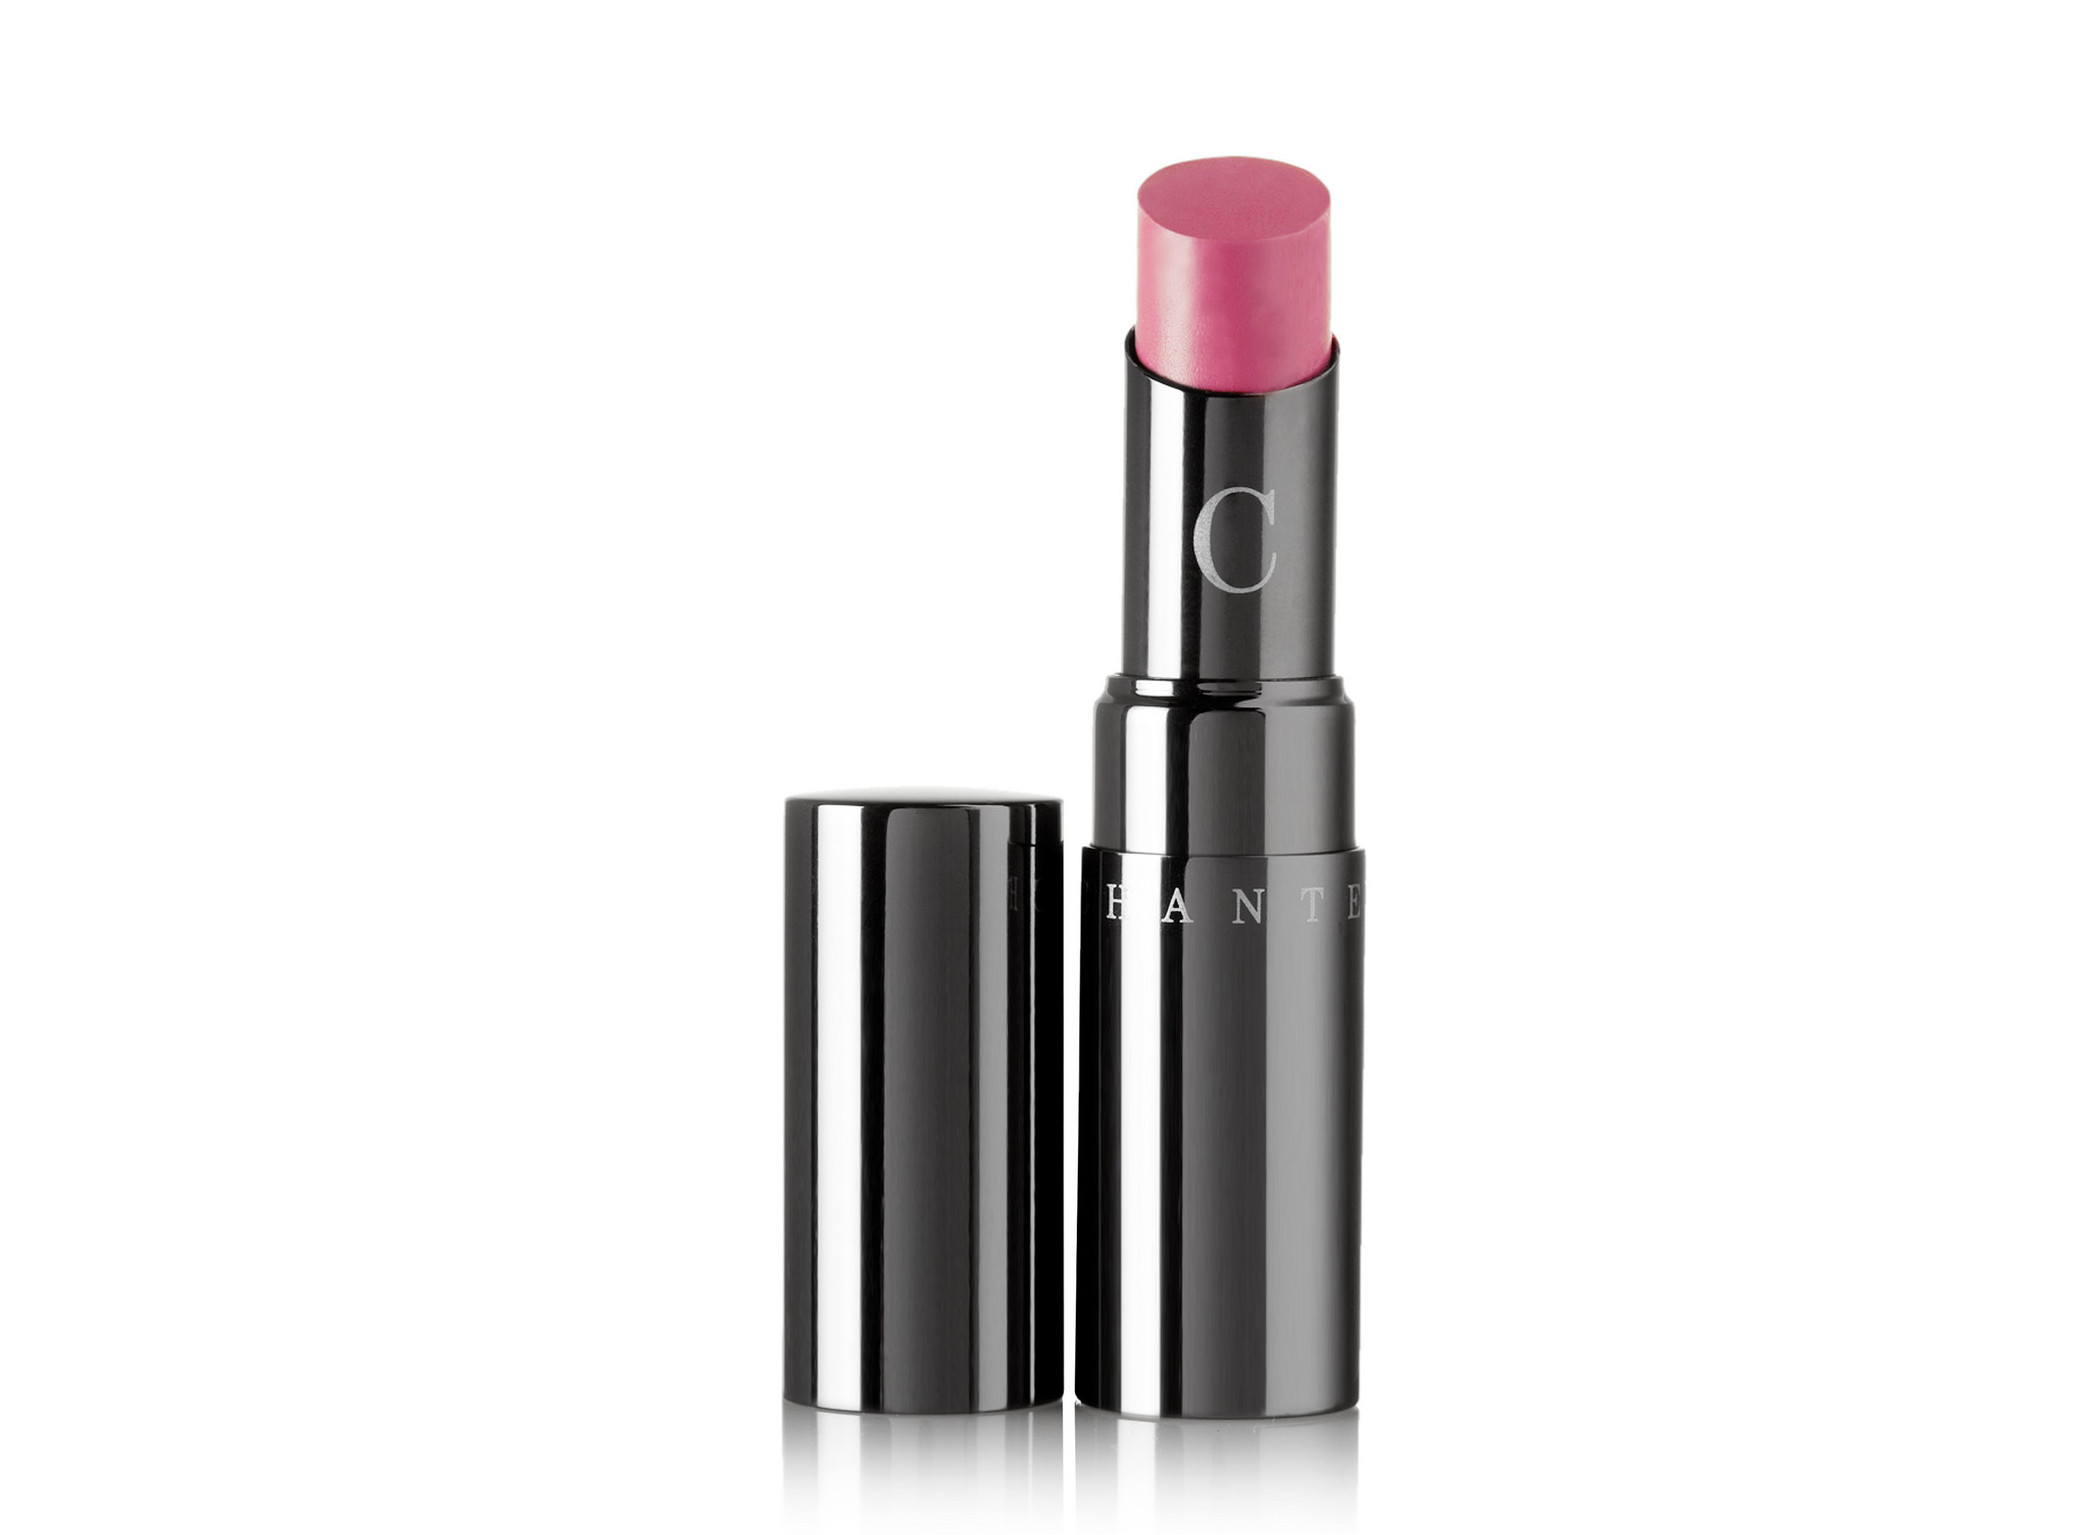 chentecaille lip chic in gypsy rose